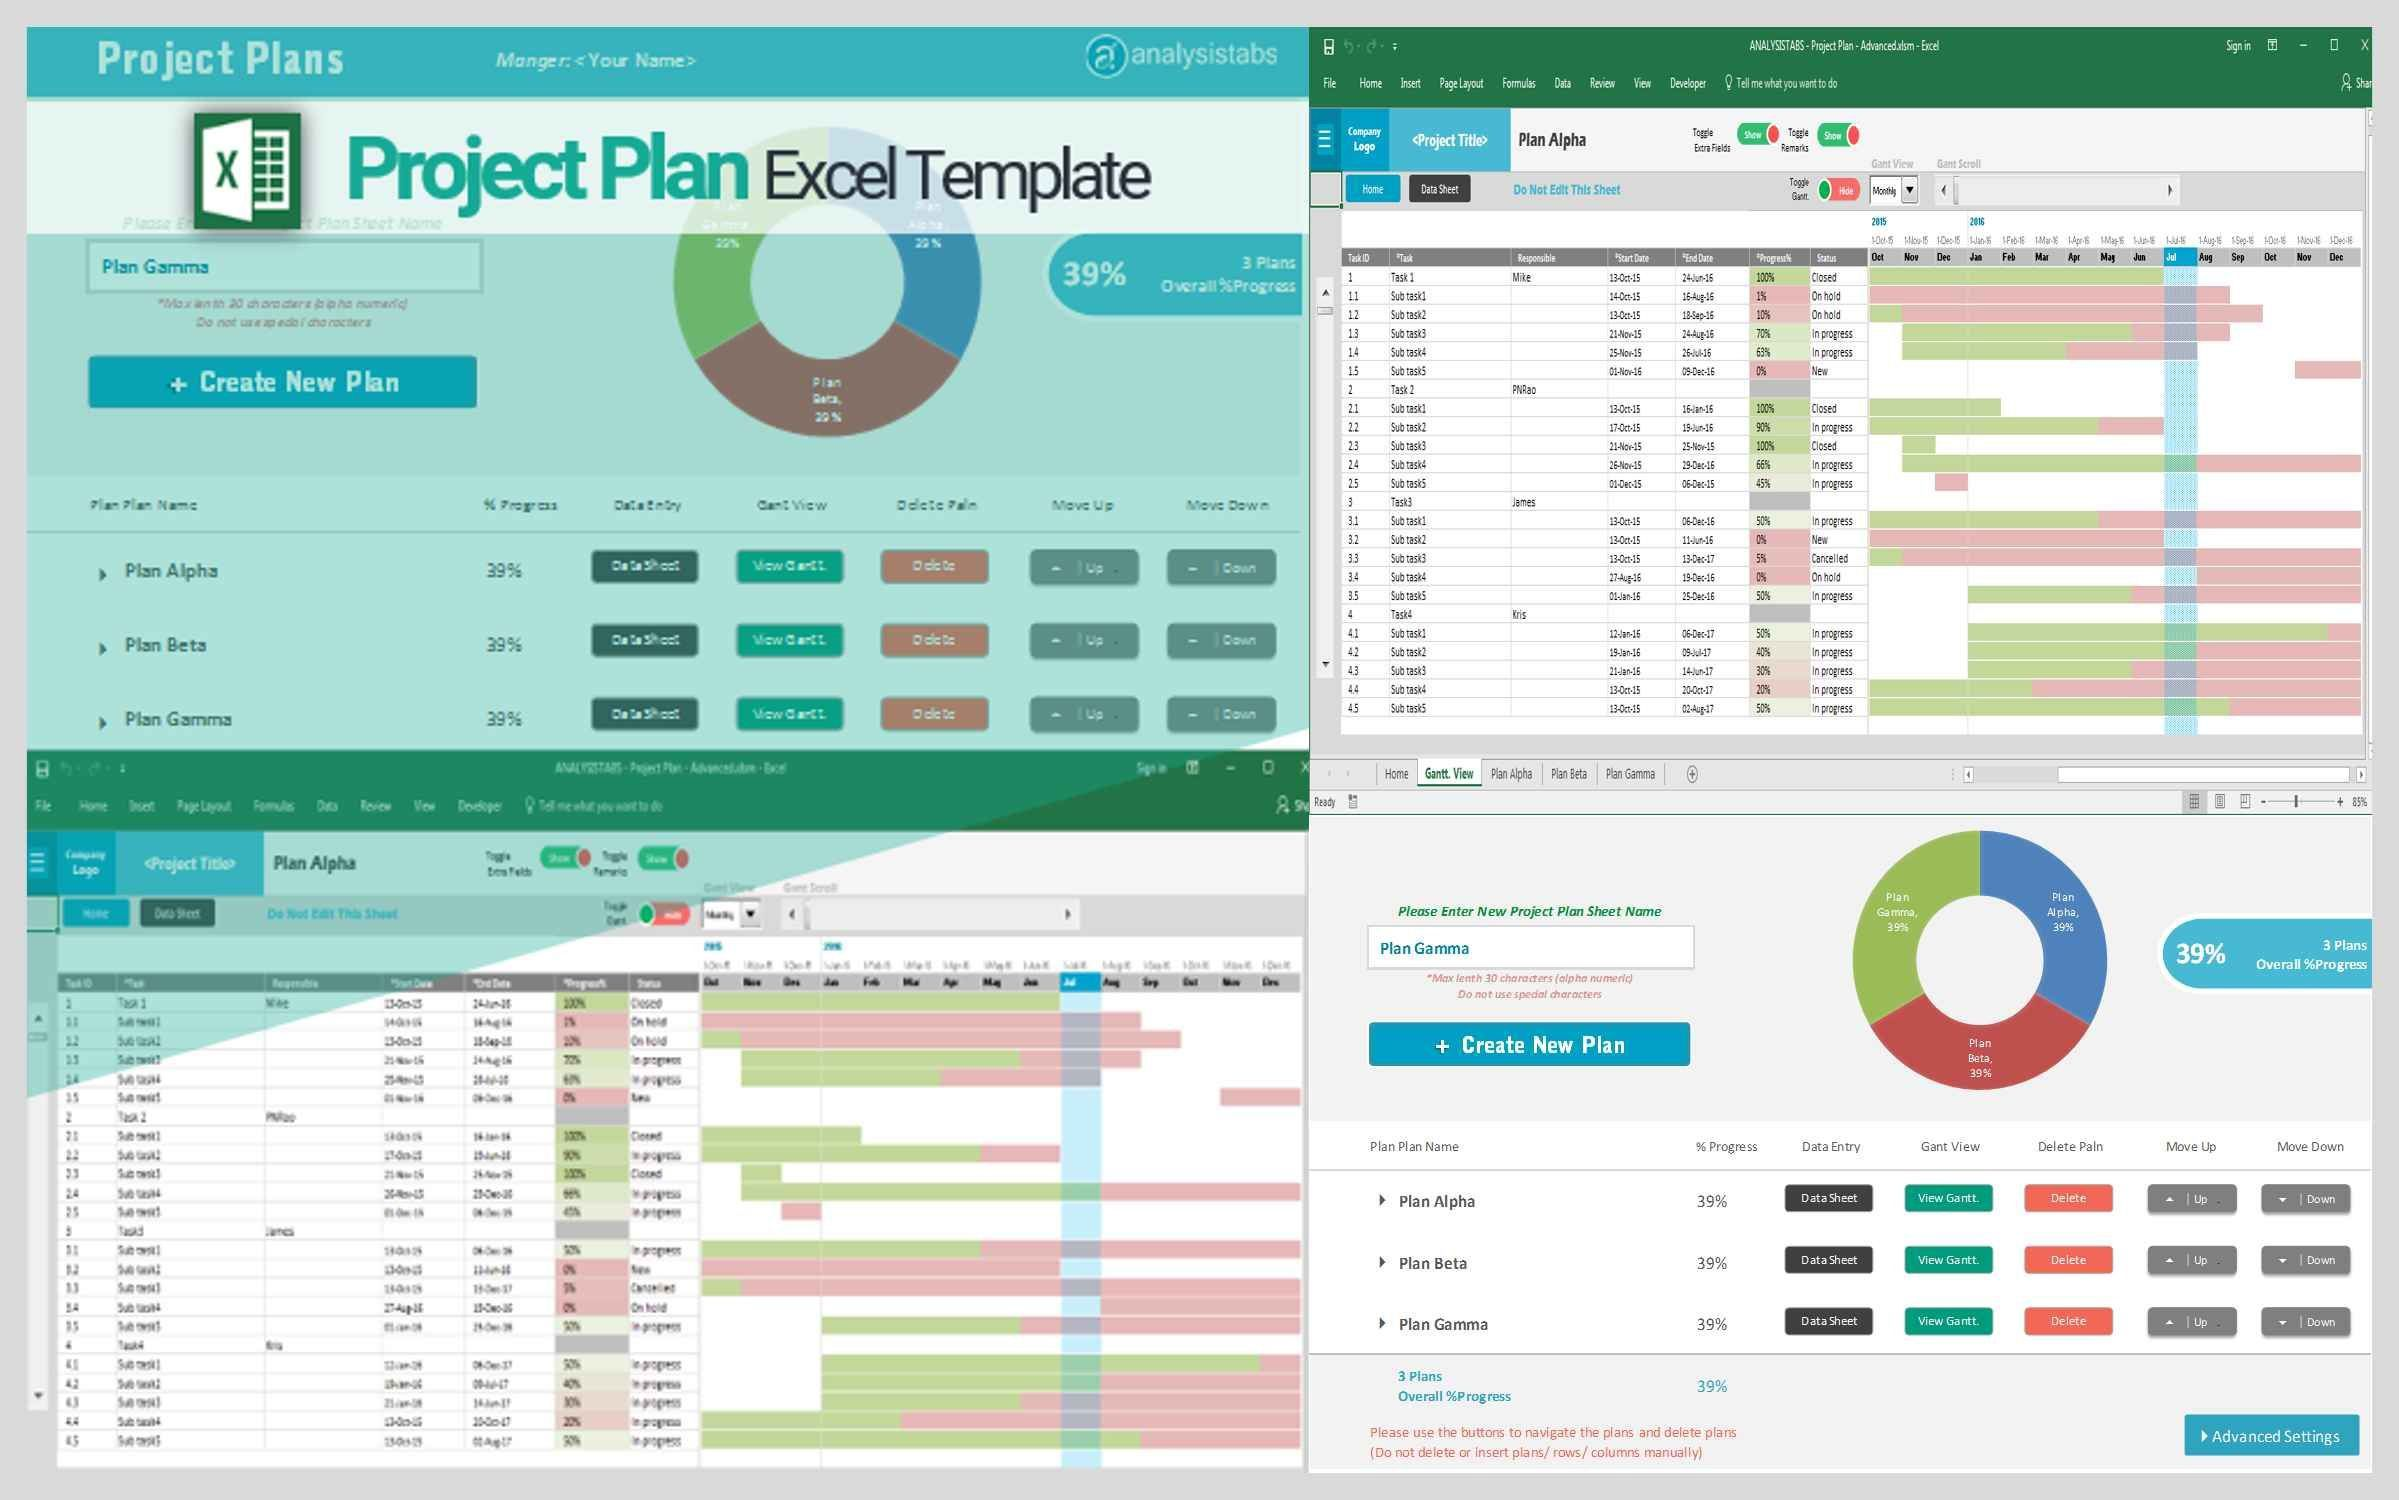 001 Formidable Excel Project Management Template Highest Quality  With Dependencie Gantt Schedule Creation Microsoft OfficeFull